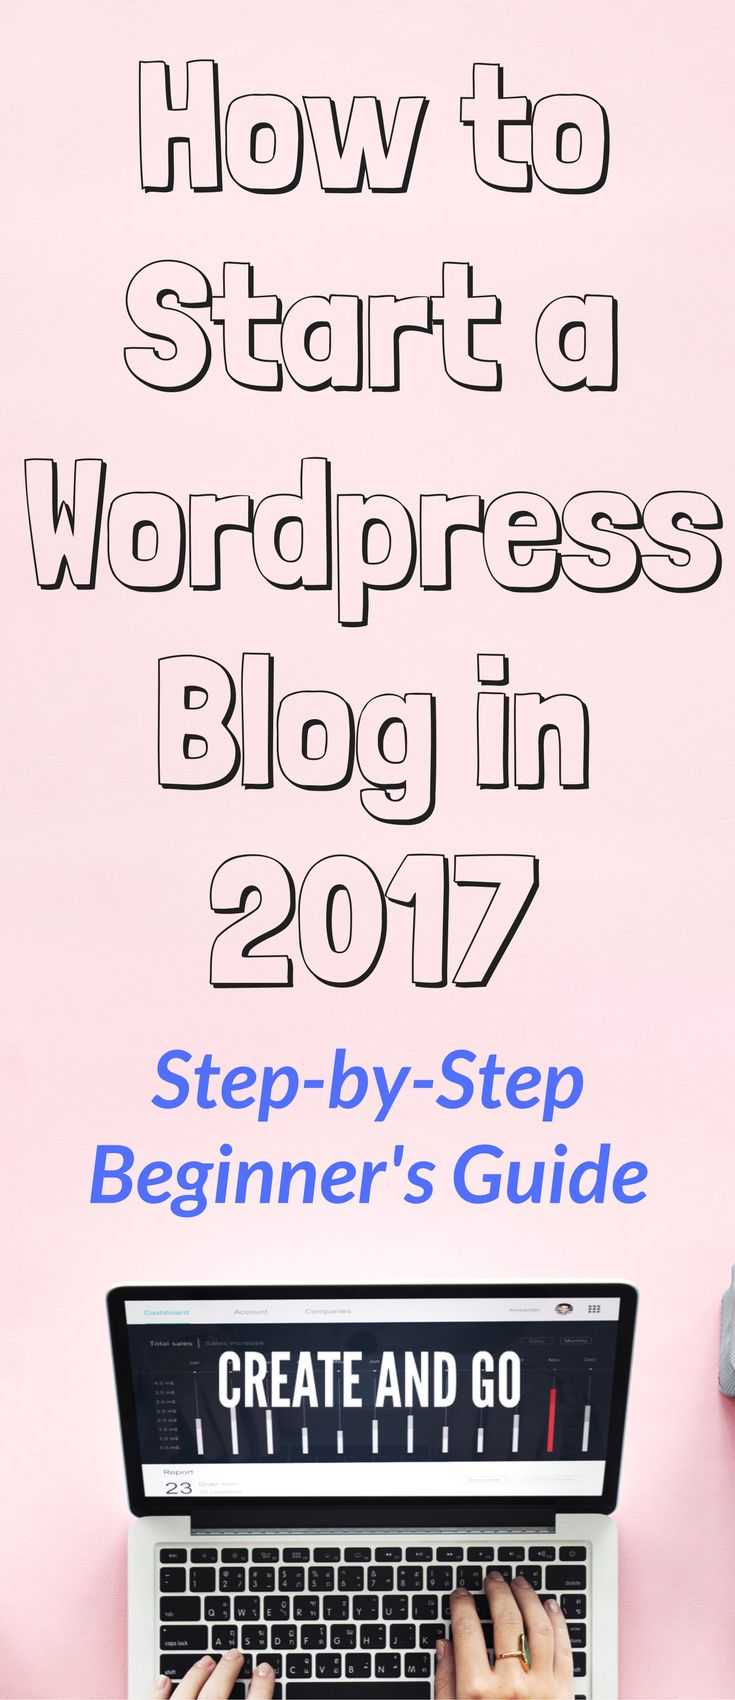 Starting our wordpress blog last year changed Lauren and I's life FOREVER. We made $103,457.83, traveled the world, and finally felt fulfilled with our work. It's time for you to get started! This step-by-step guide to how to start a wordpress blog will easily walk you through the process: https://createandgo.co/how-to-start-a-wordpress-blog/